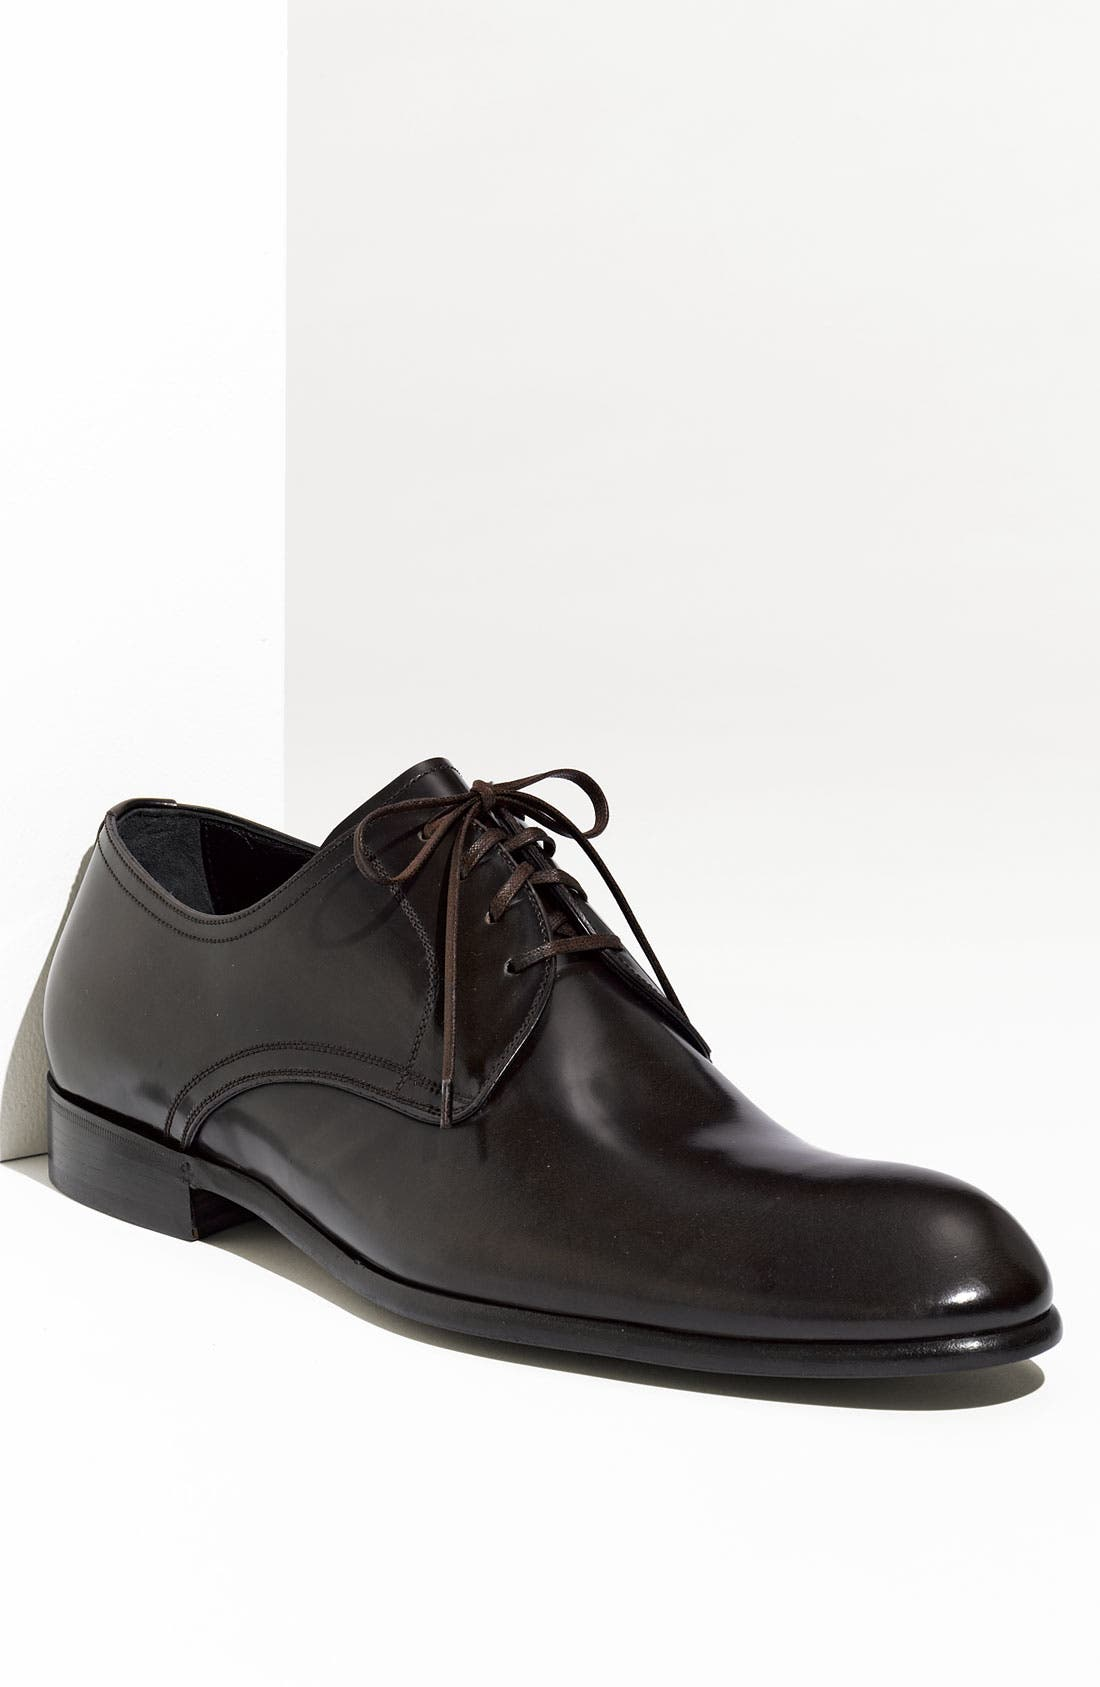 Main Image - Dolce&Gabbana Plain Toe Oxford